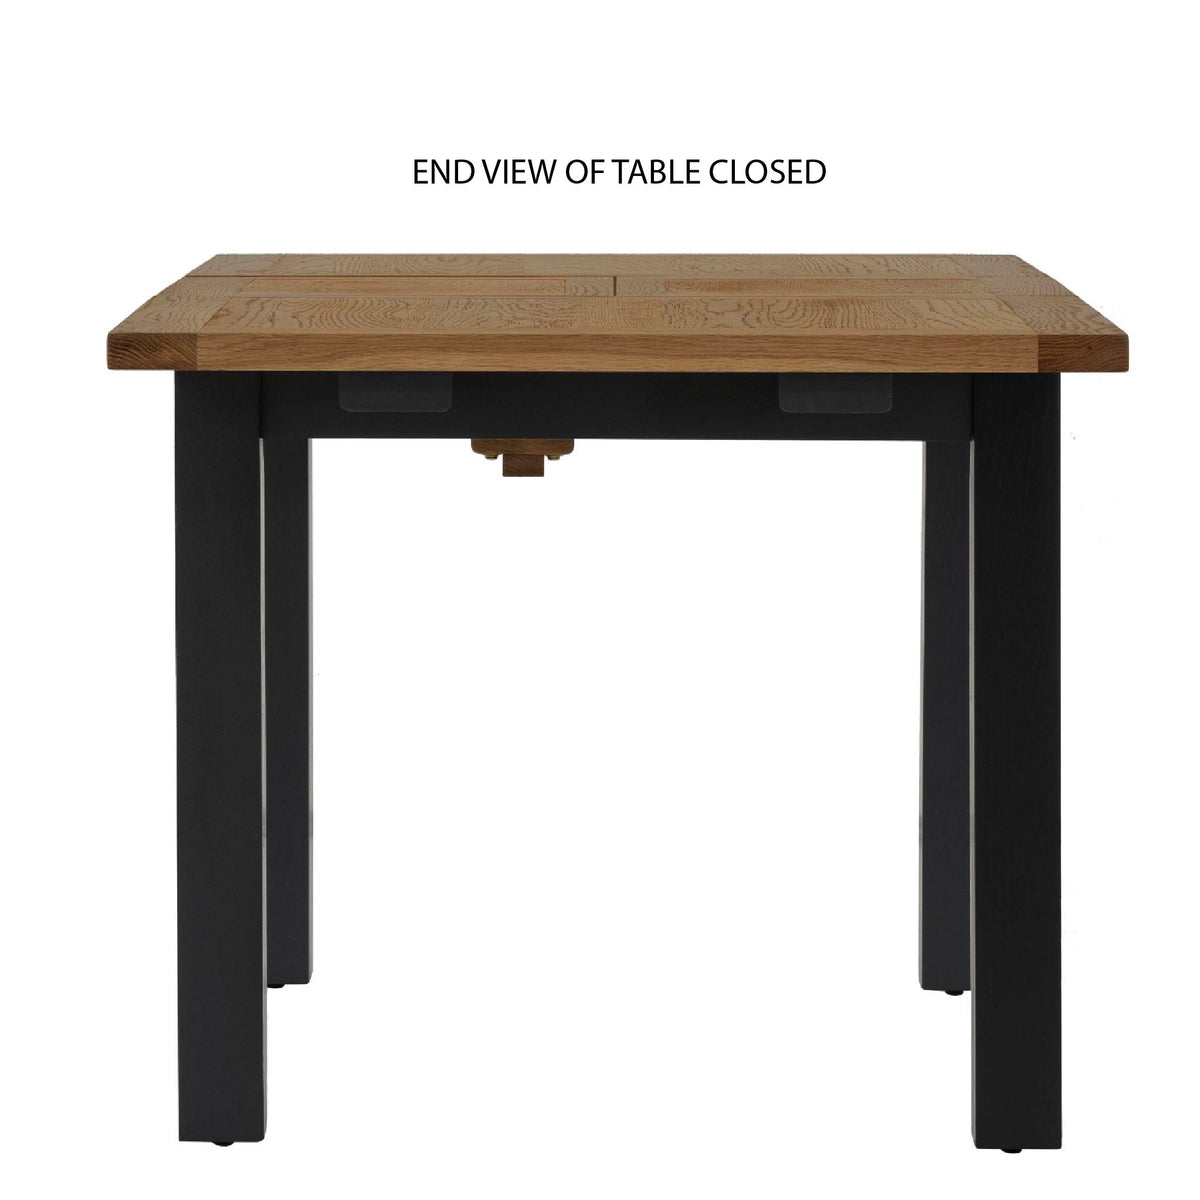 Charlestown Black Extendable Dining Table - Closed End View